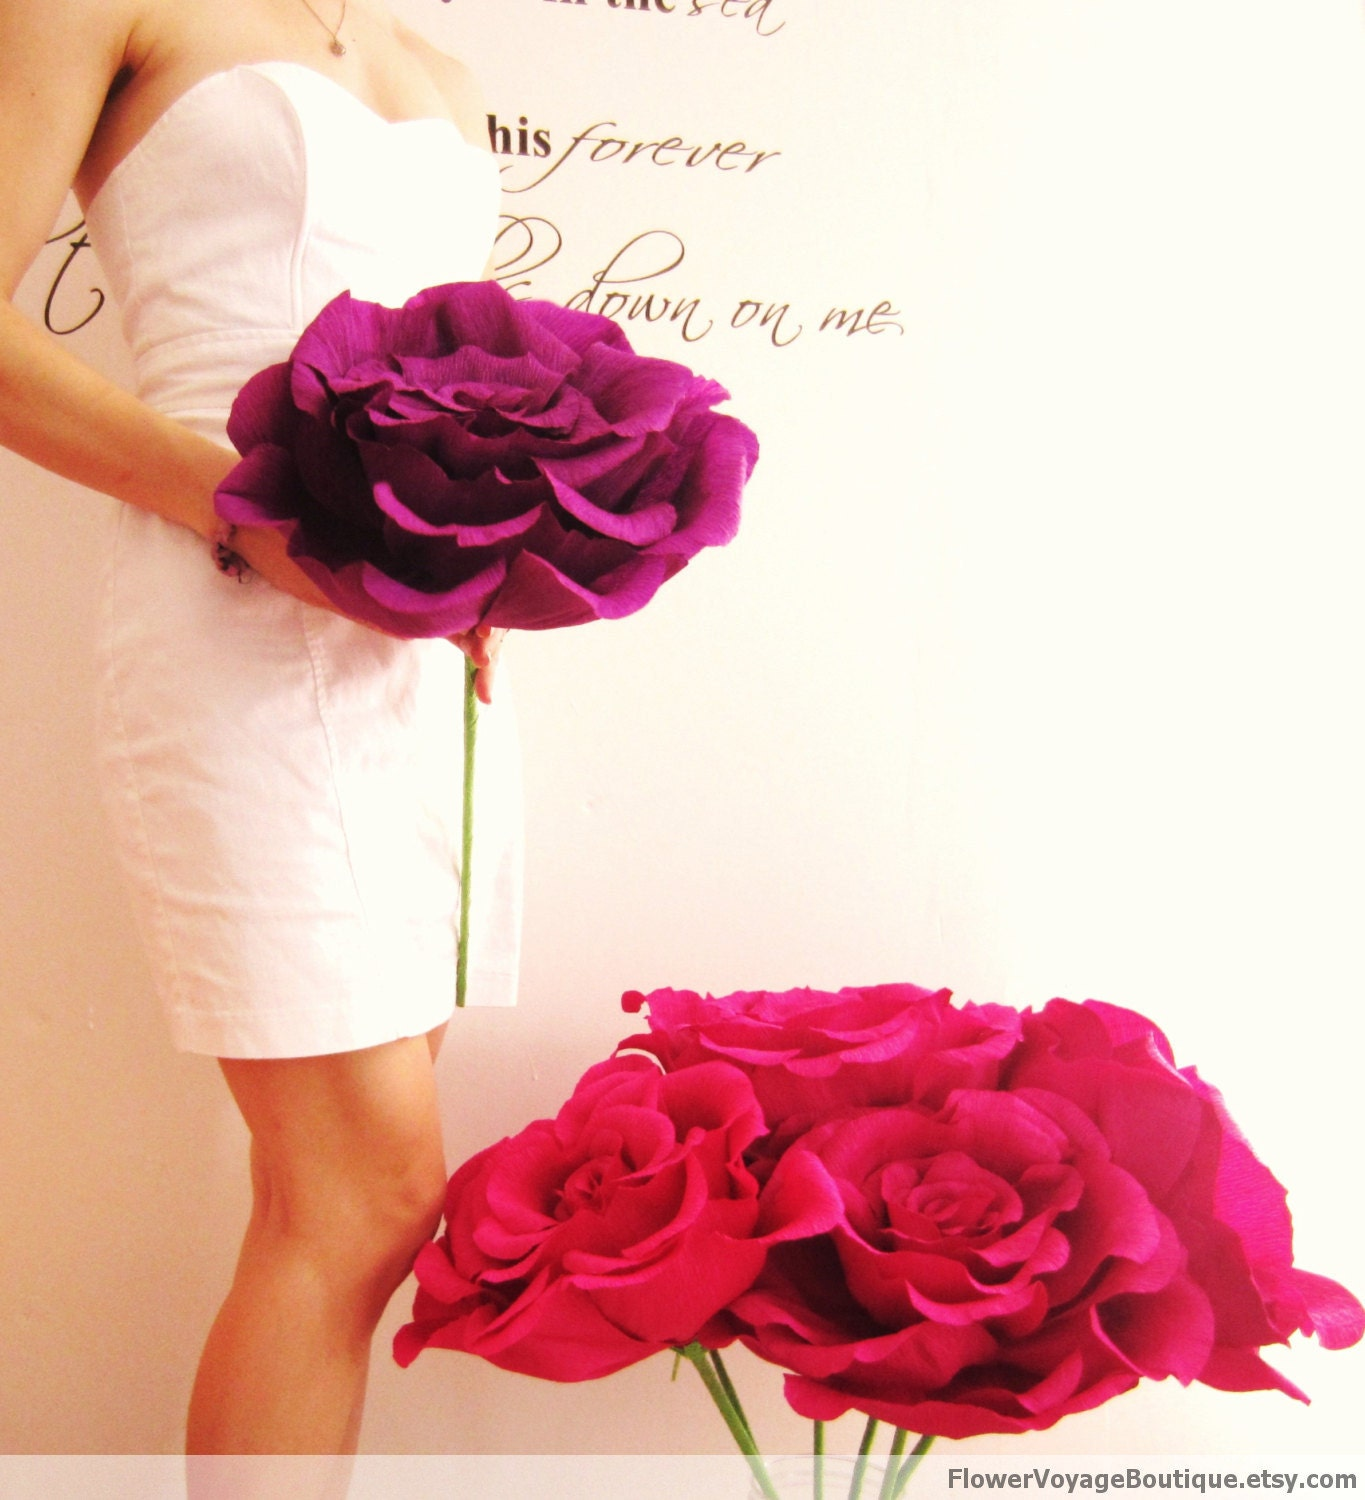 Go For Oversized Florals: Oversized Paper Flower With Long Stem. By FlowerVoyageBoutique